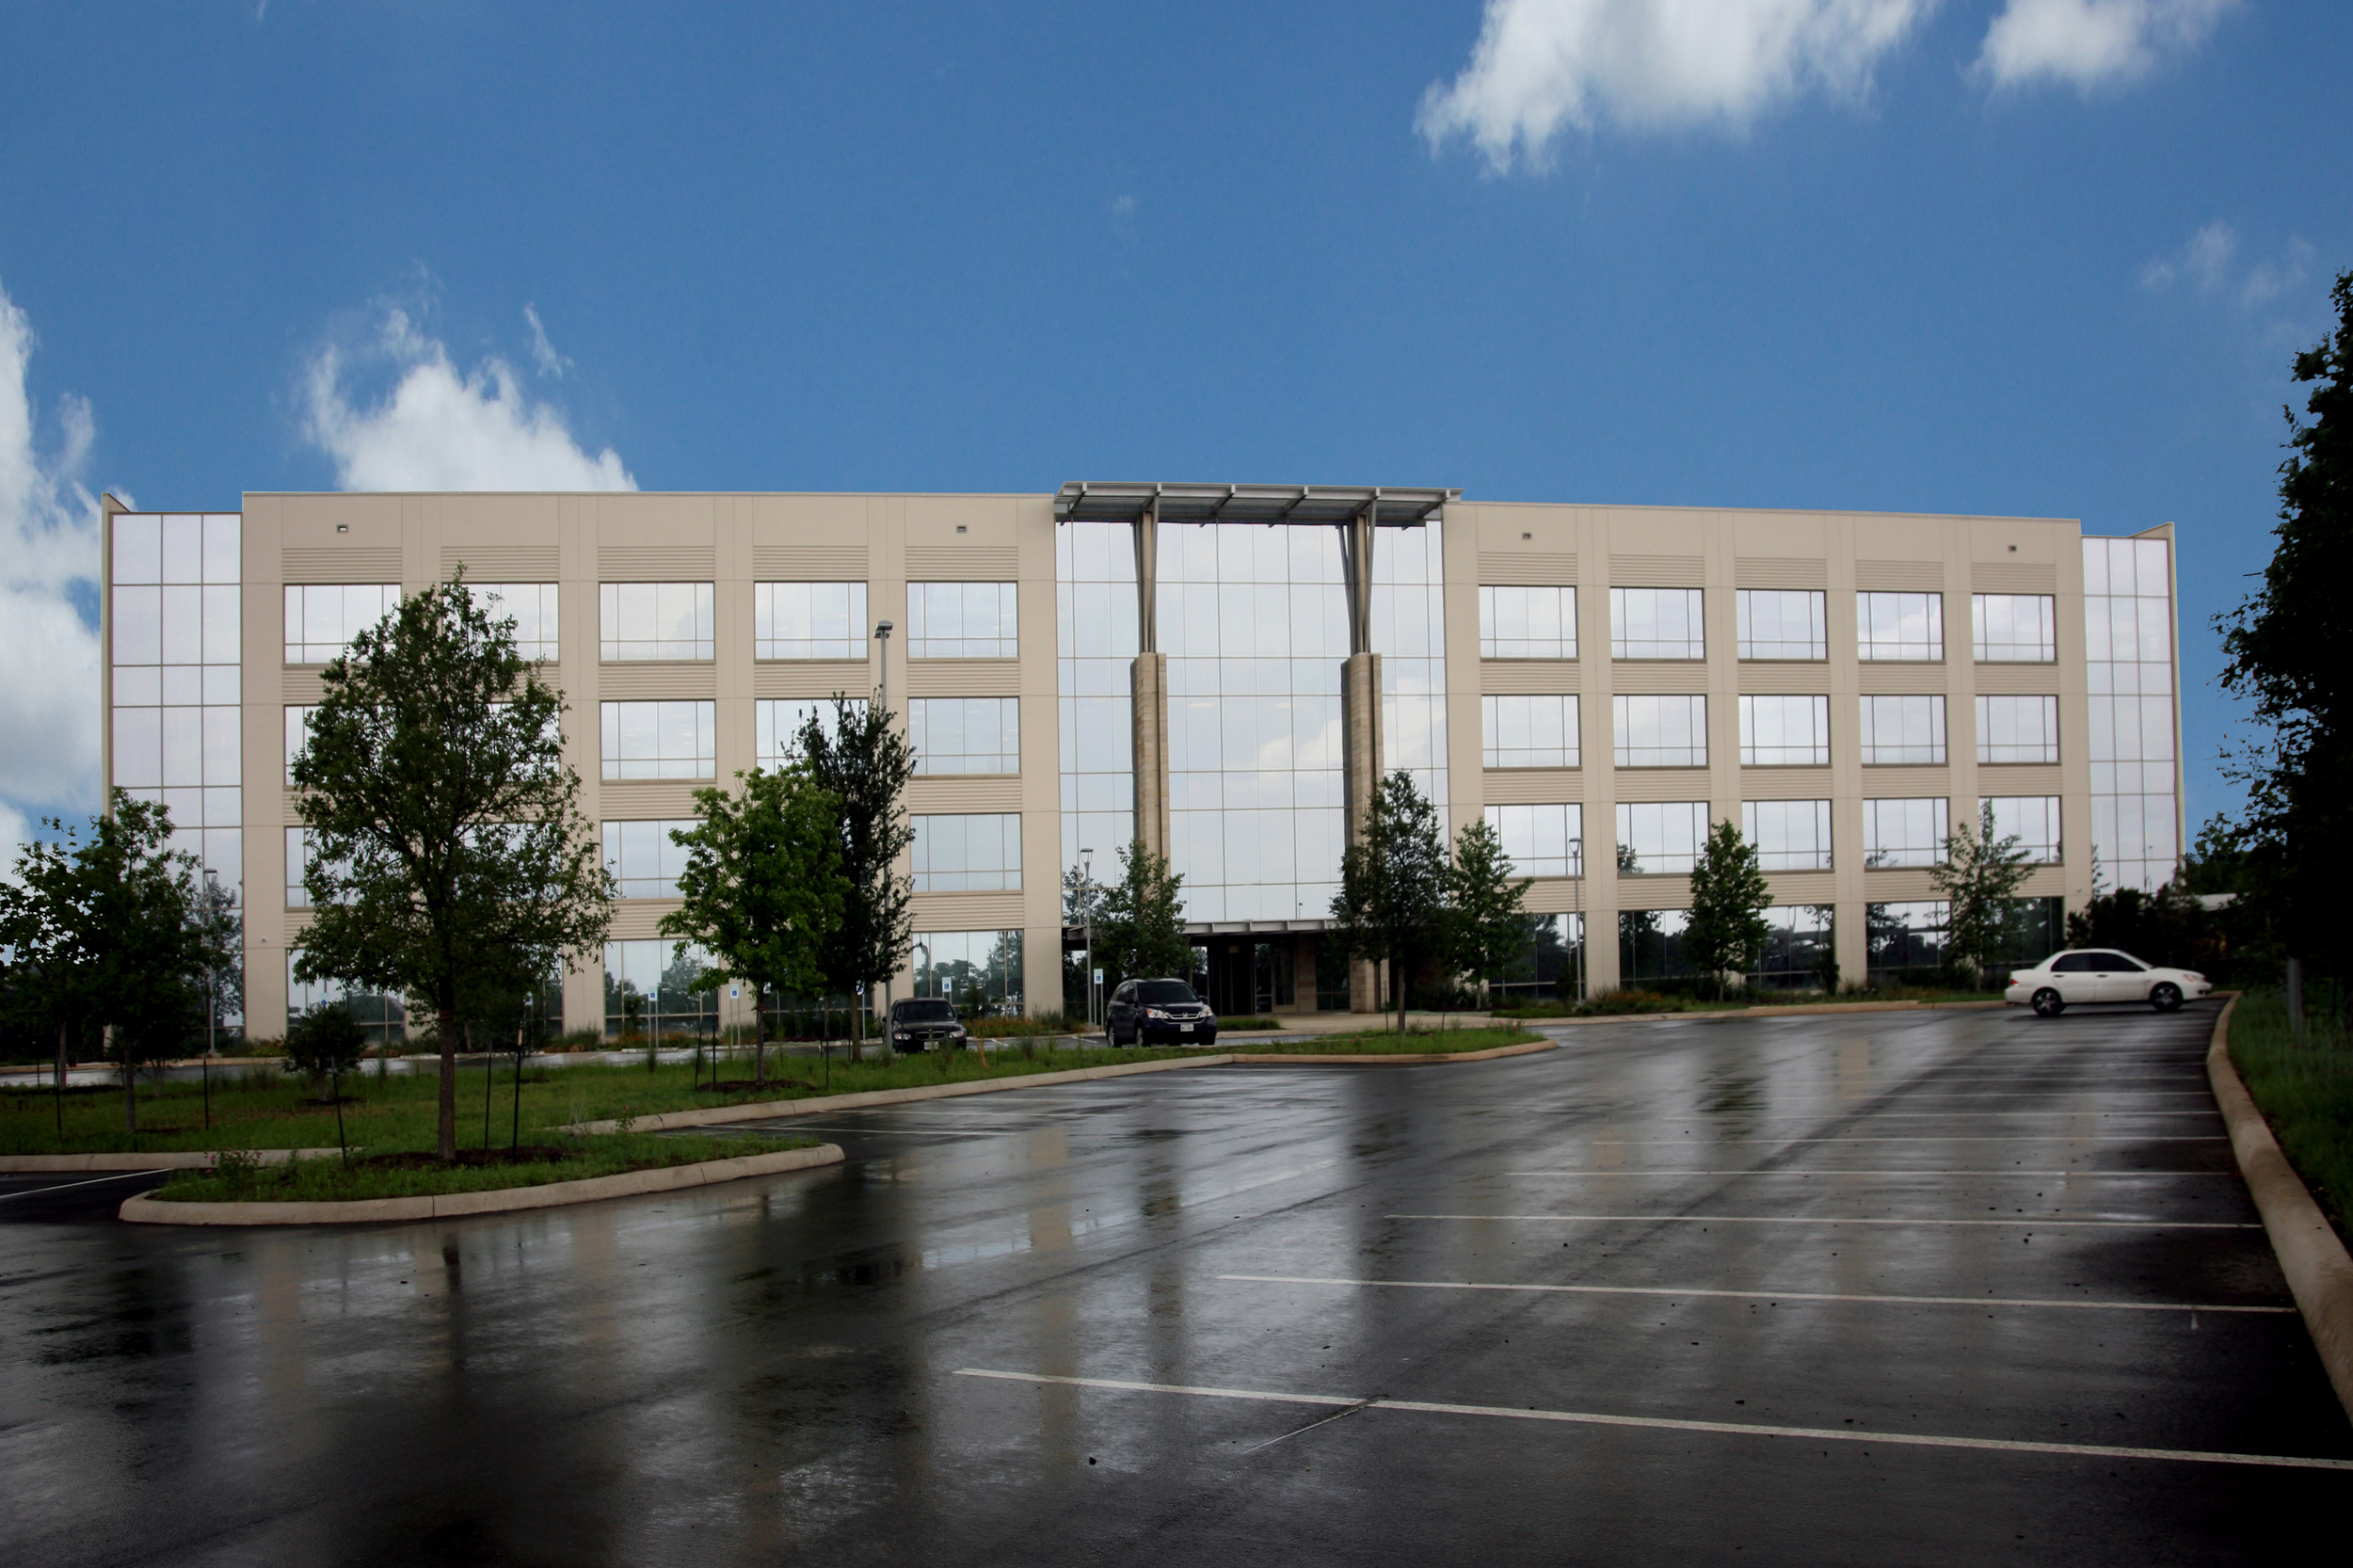 La Cantera West Ridge South.  Proyect designed and managed by Oscar Valdez working at Haynes Whaley Associates.